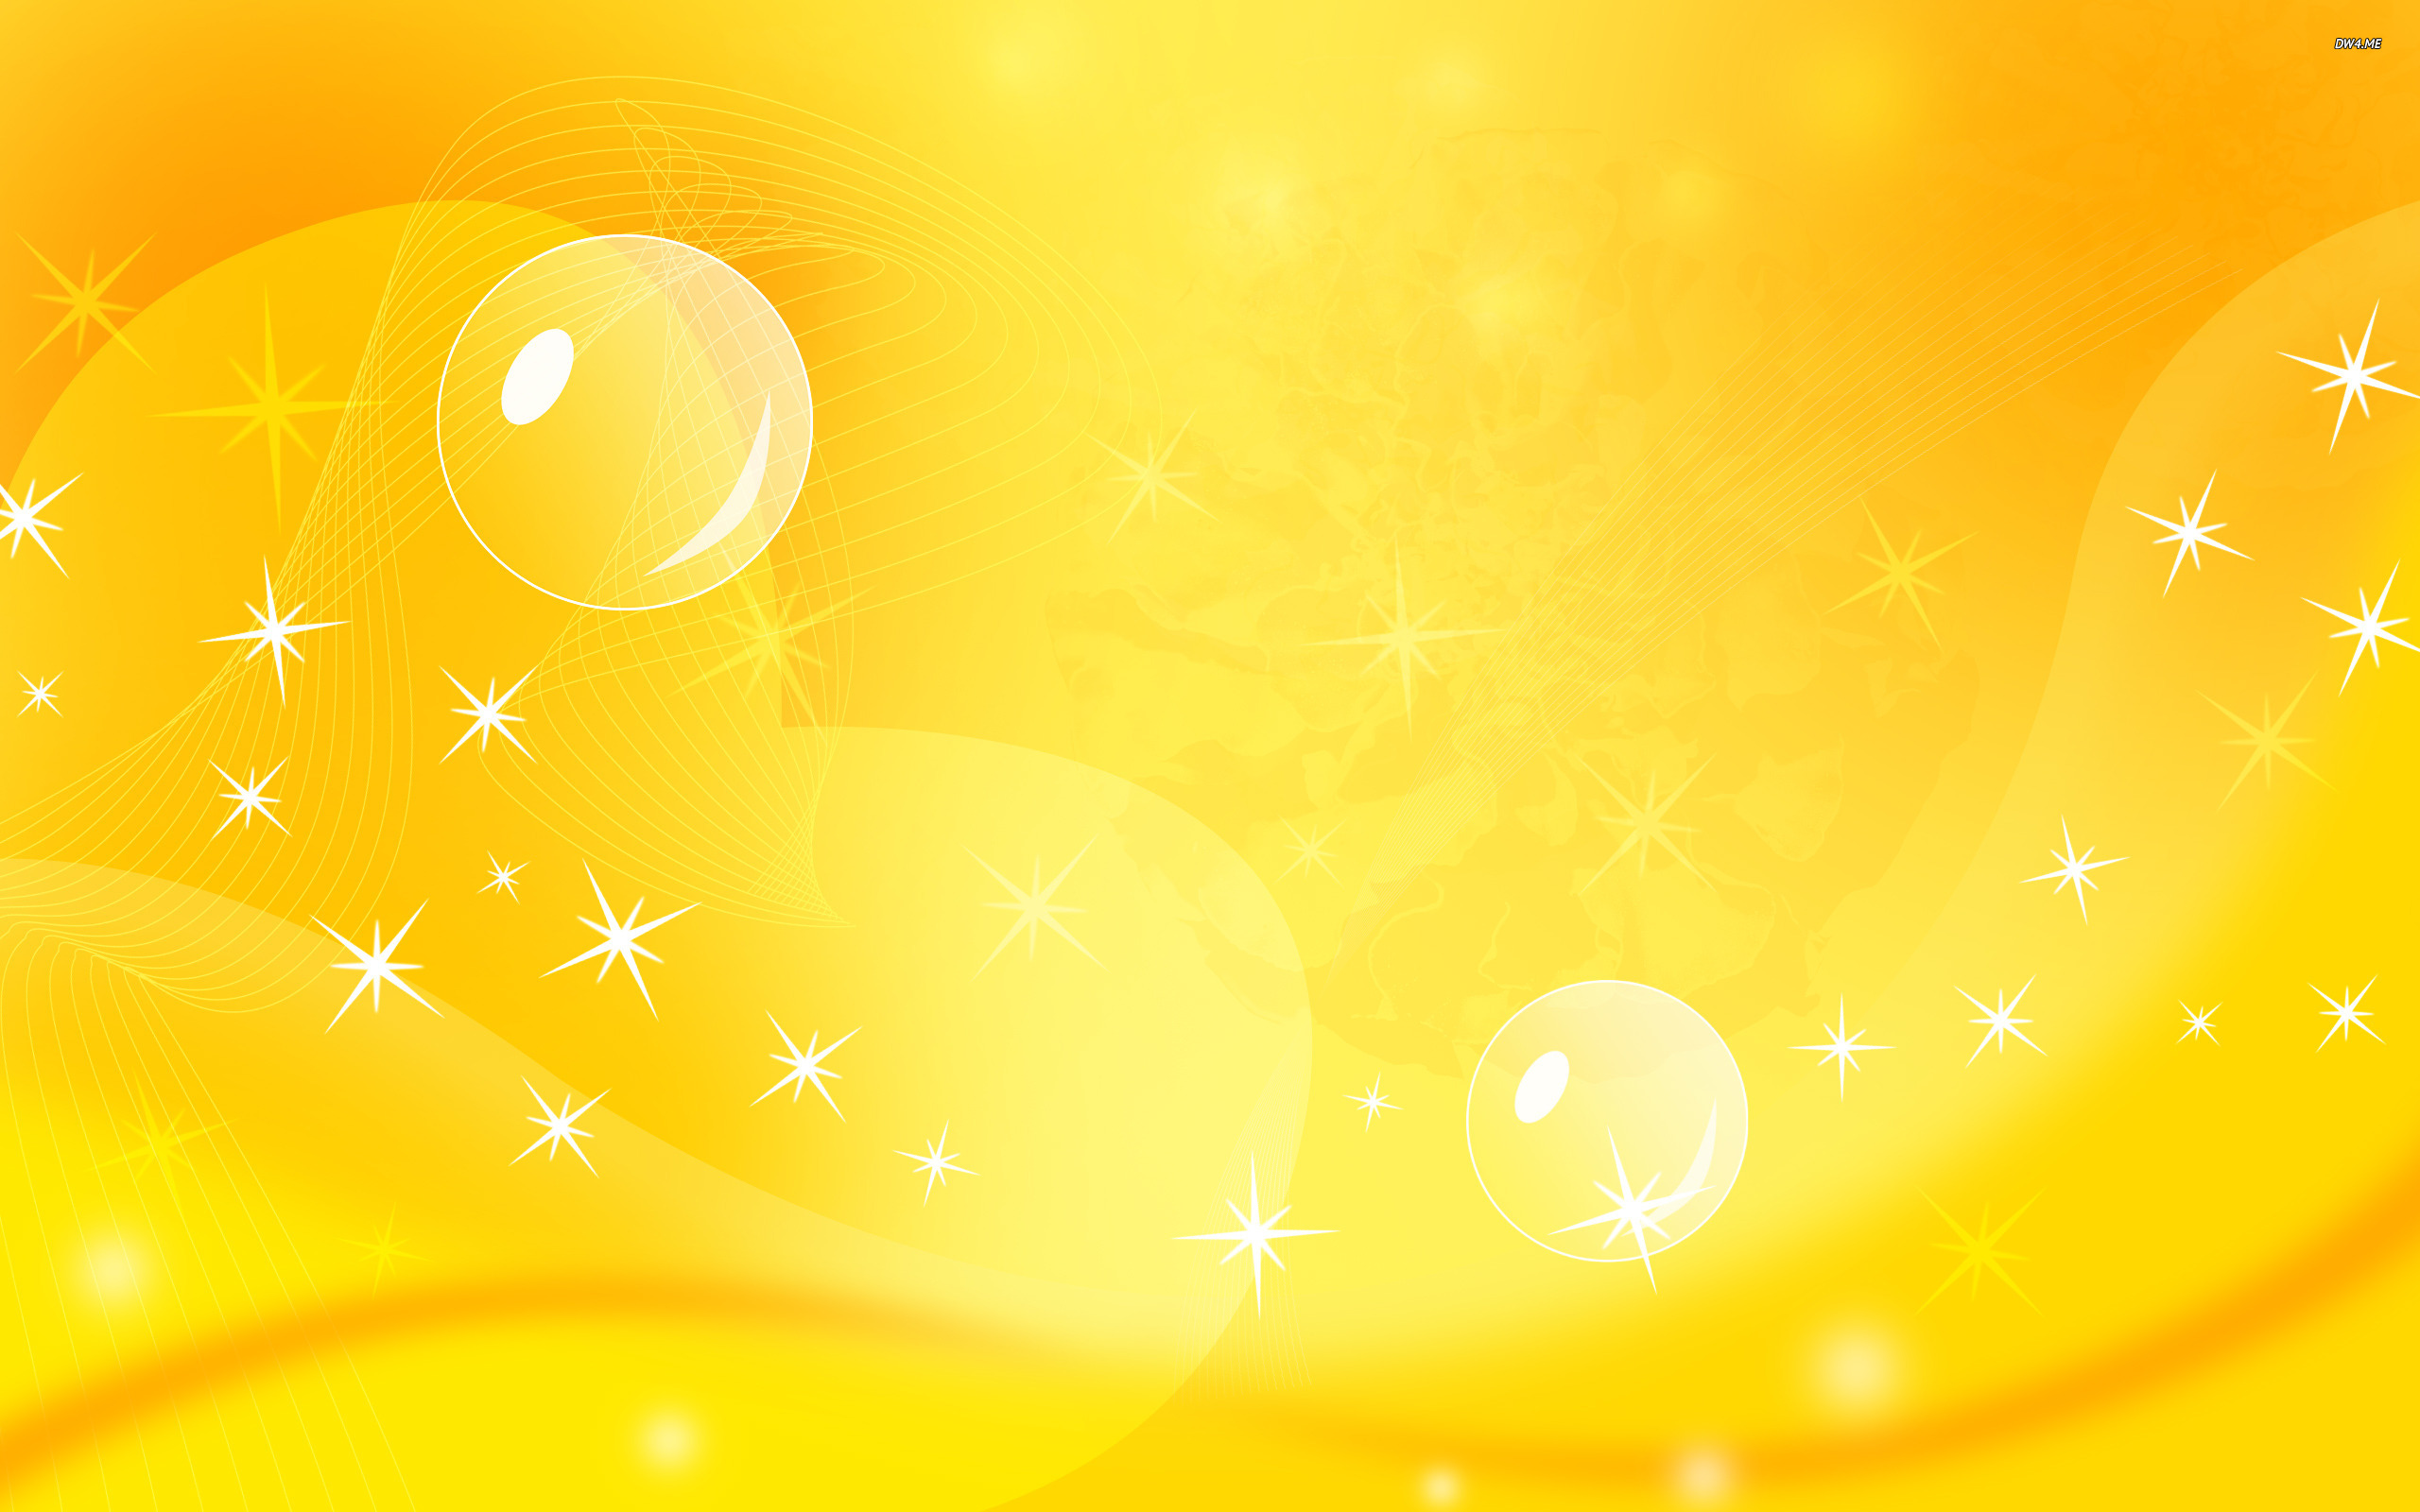 Wallpapers For > Bright Yellow Background Designs